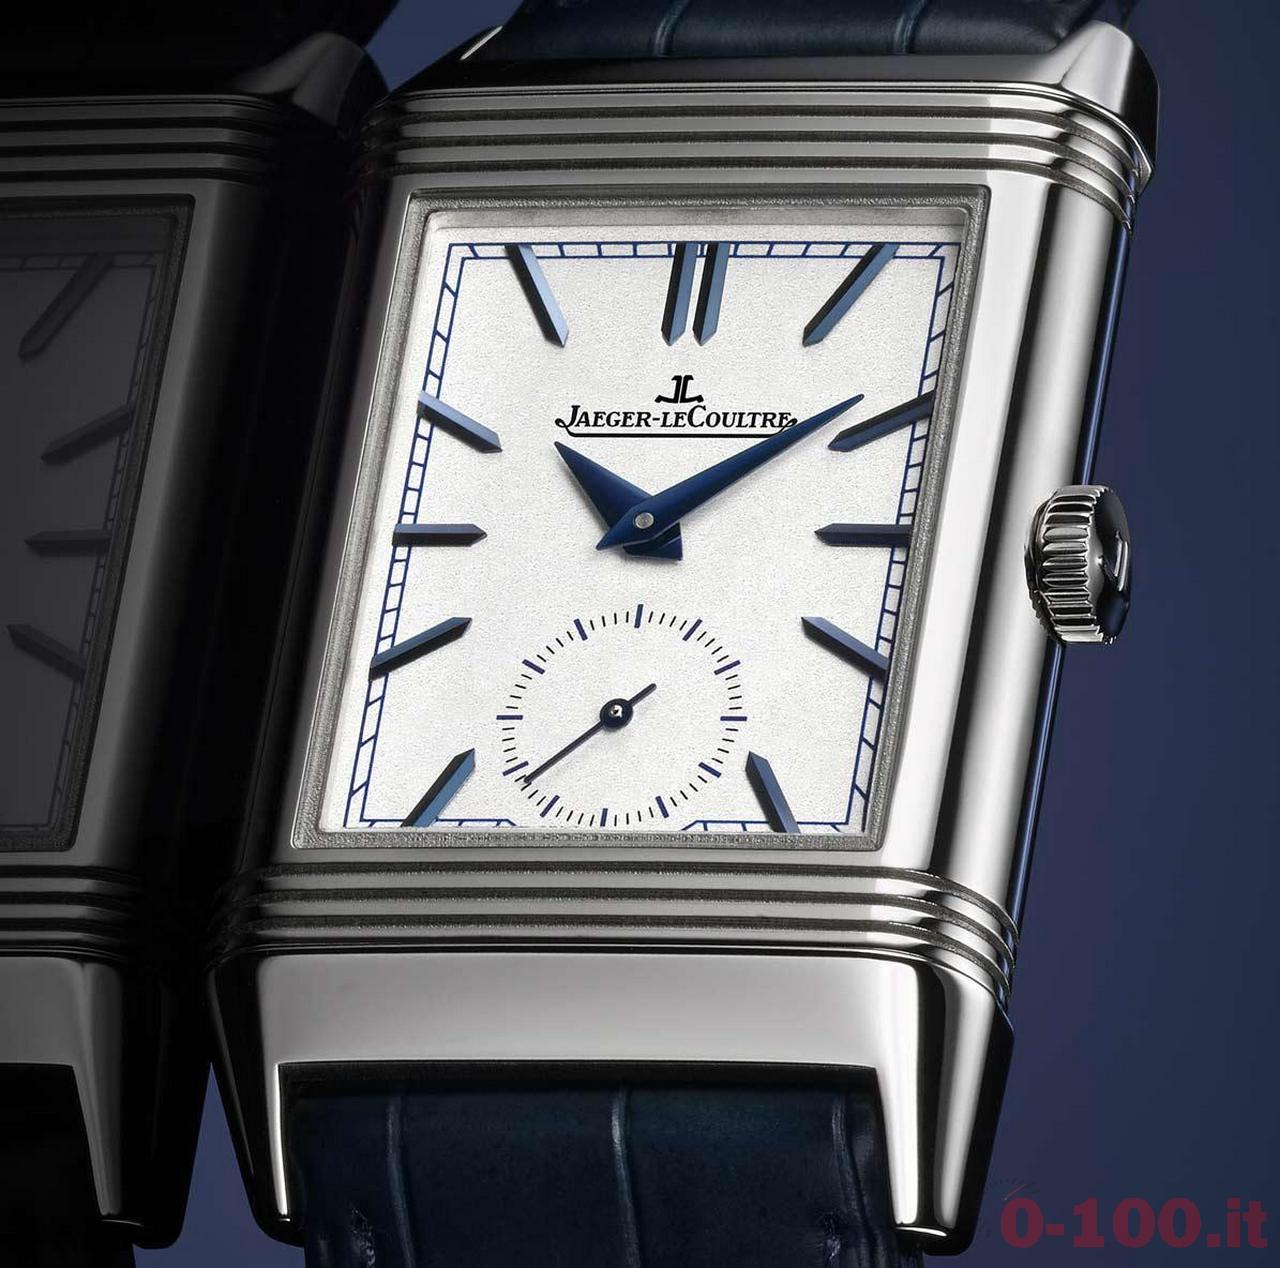 anteprima-sihh-2016-jaeger-lecoultre-2016-reverso-collection-85th-anniversary_0-1002